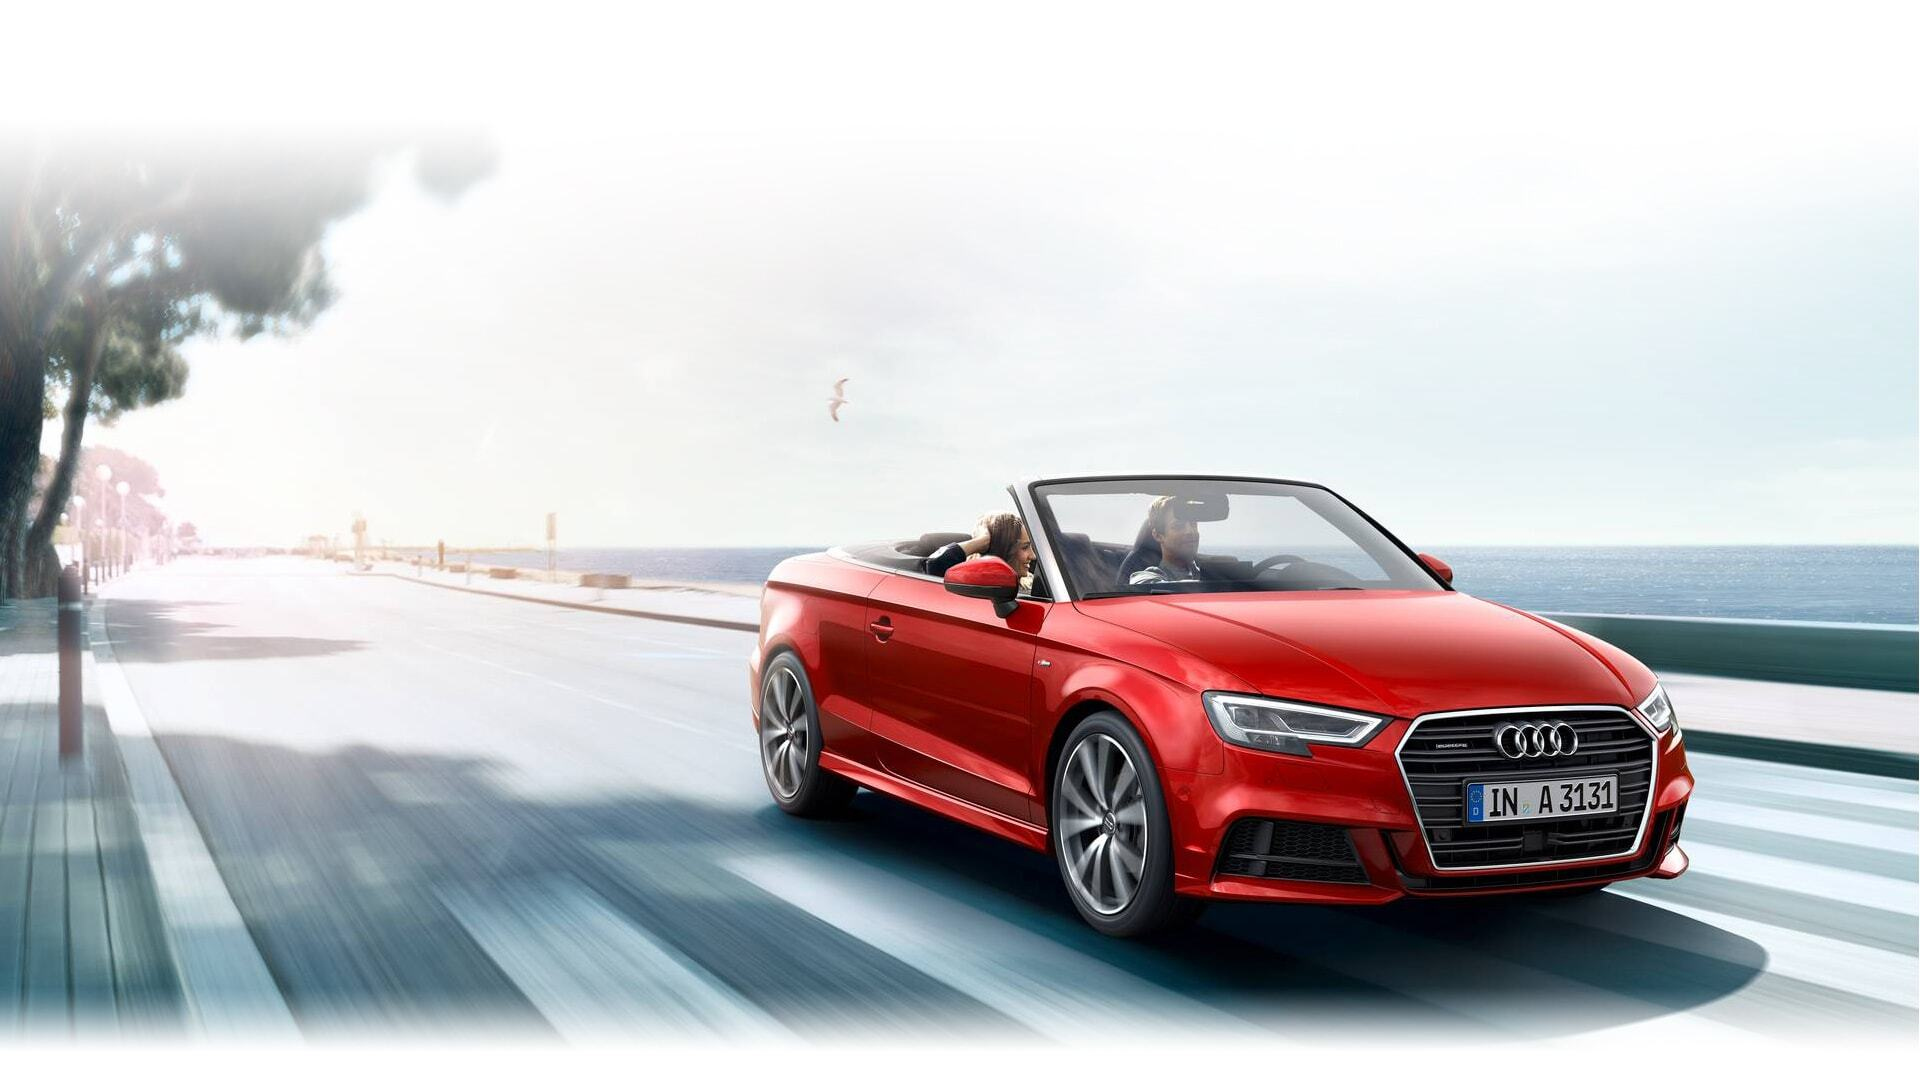 a European model of the new 2019 Audi A3 Cabriolet